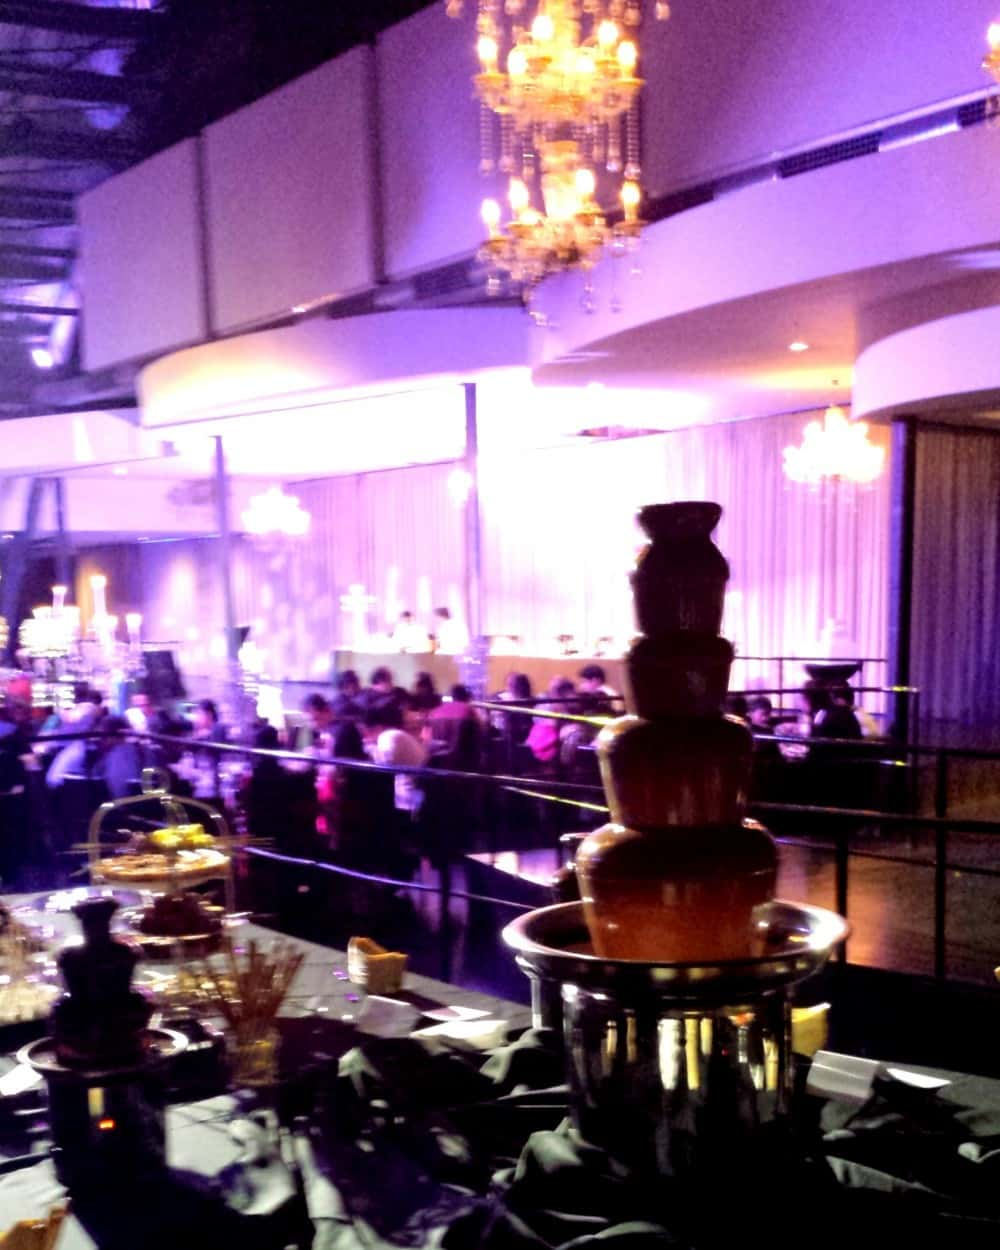 Melbourne Pavilion Wedding Chocolate Fountain Dessert Buffet 8.1